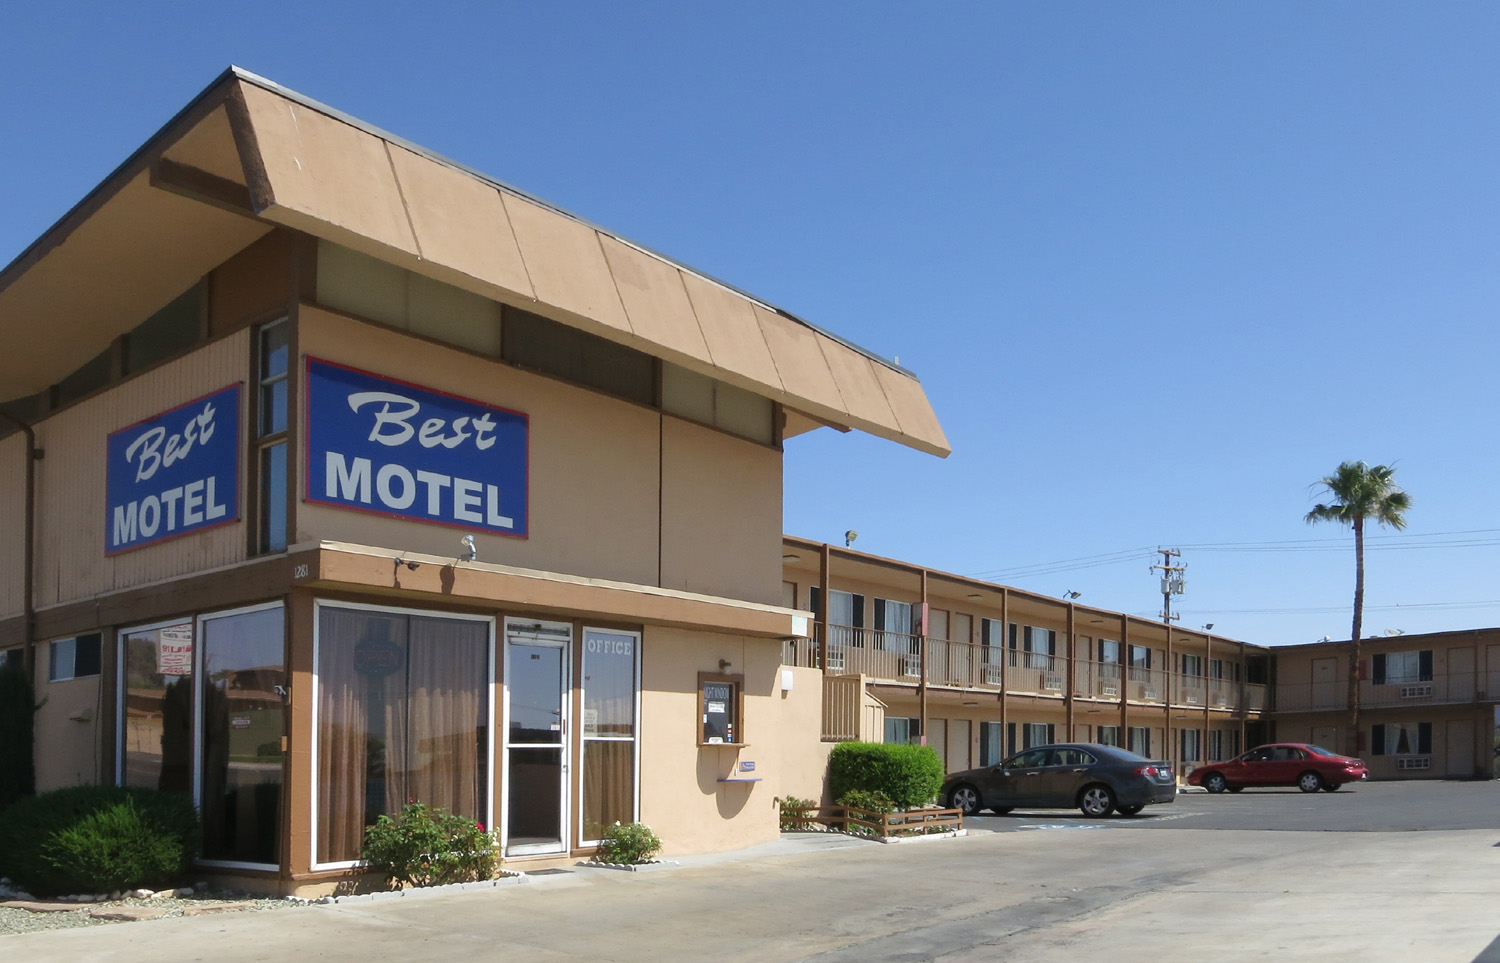 The sad old motels of Barstow, California - Boing Boing